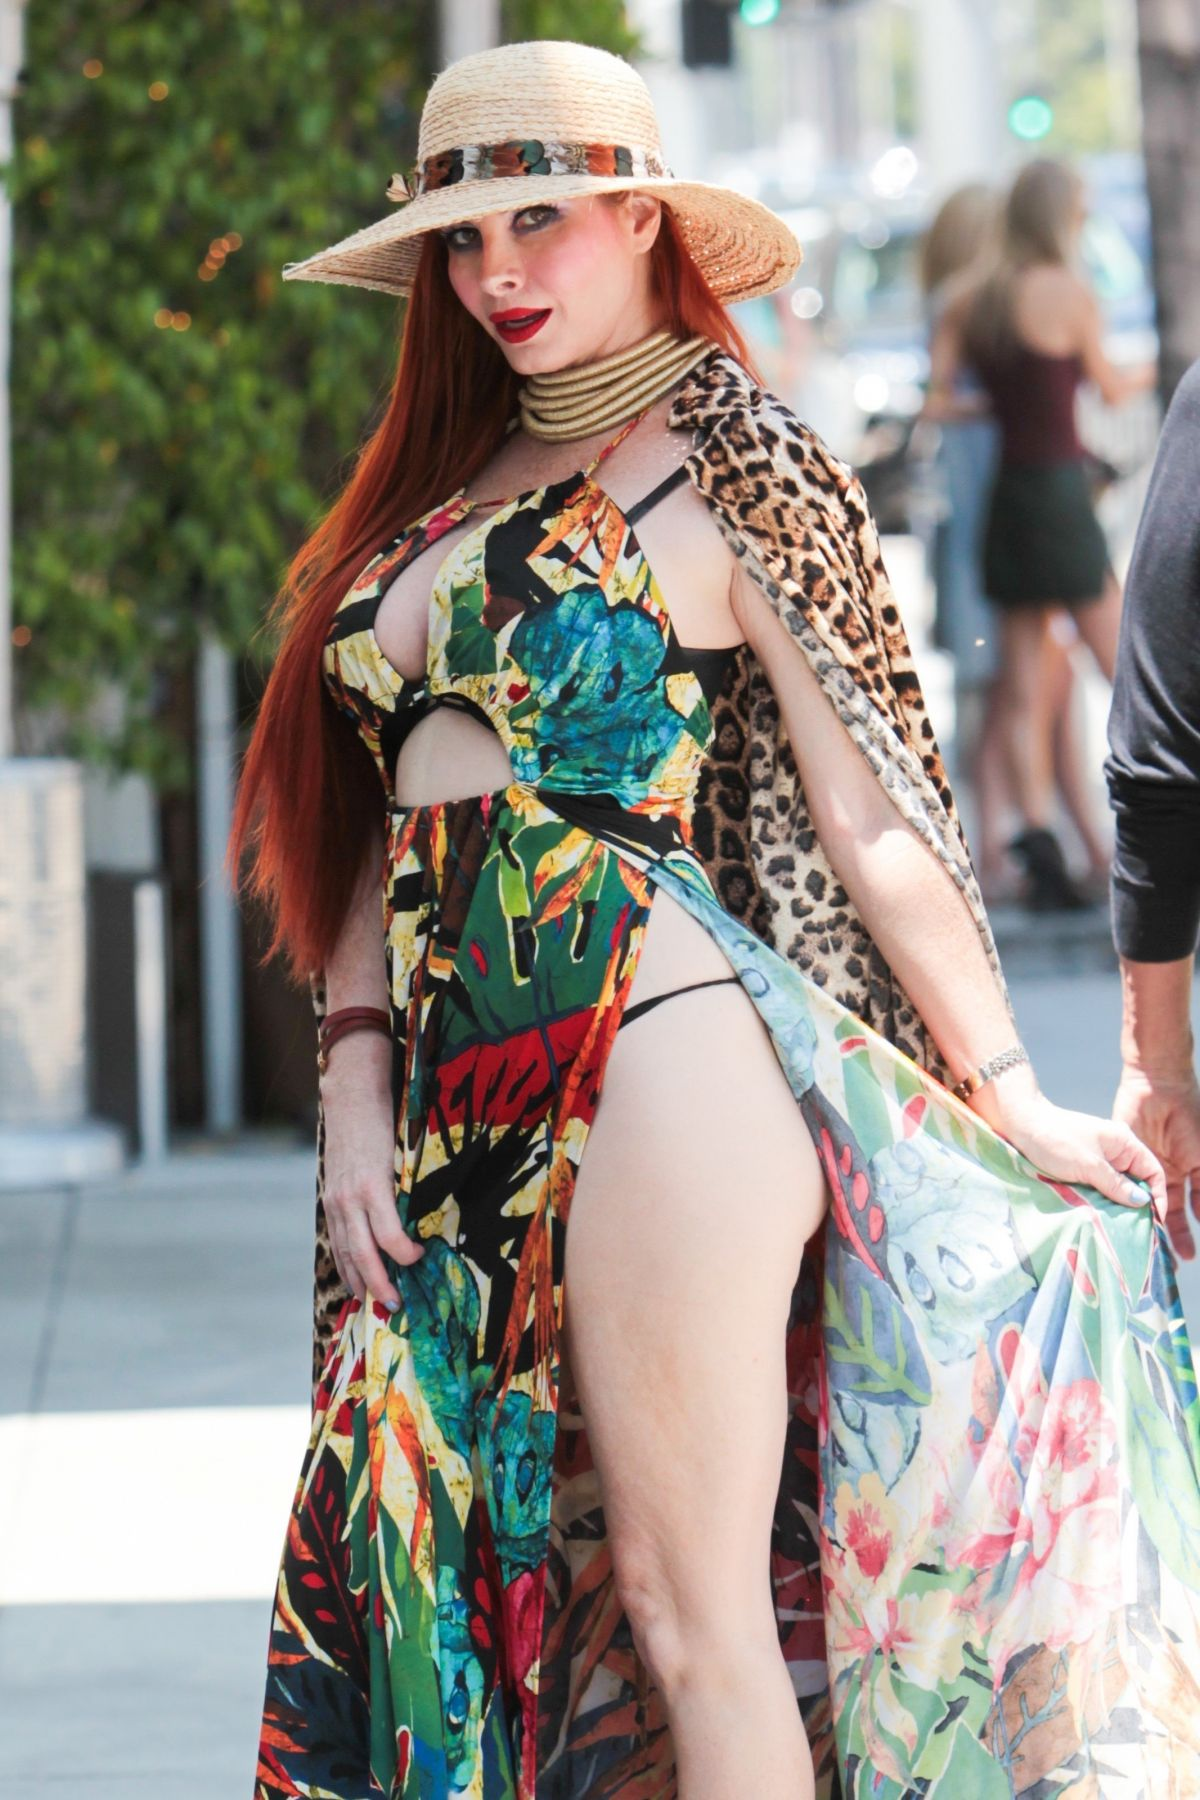 Phoebe Price photos